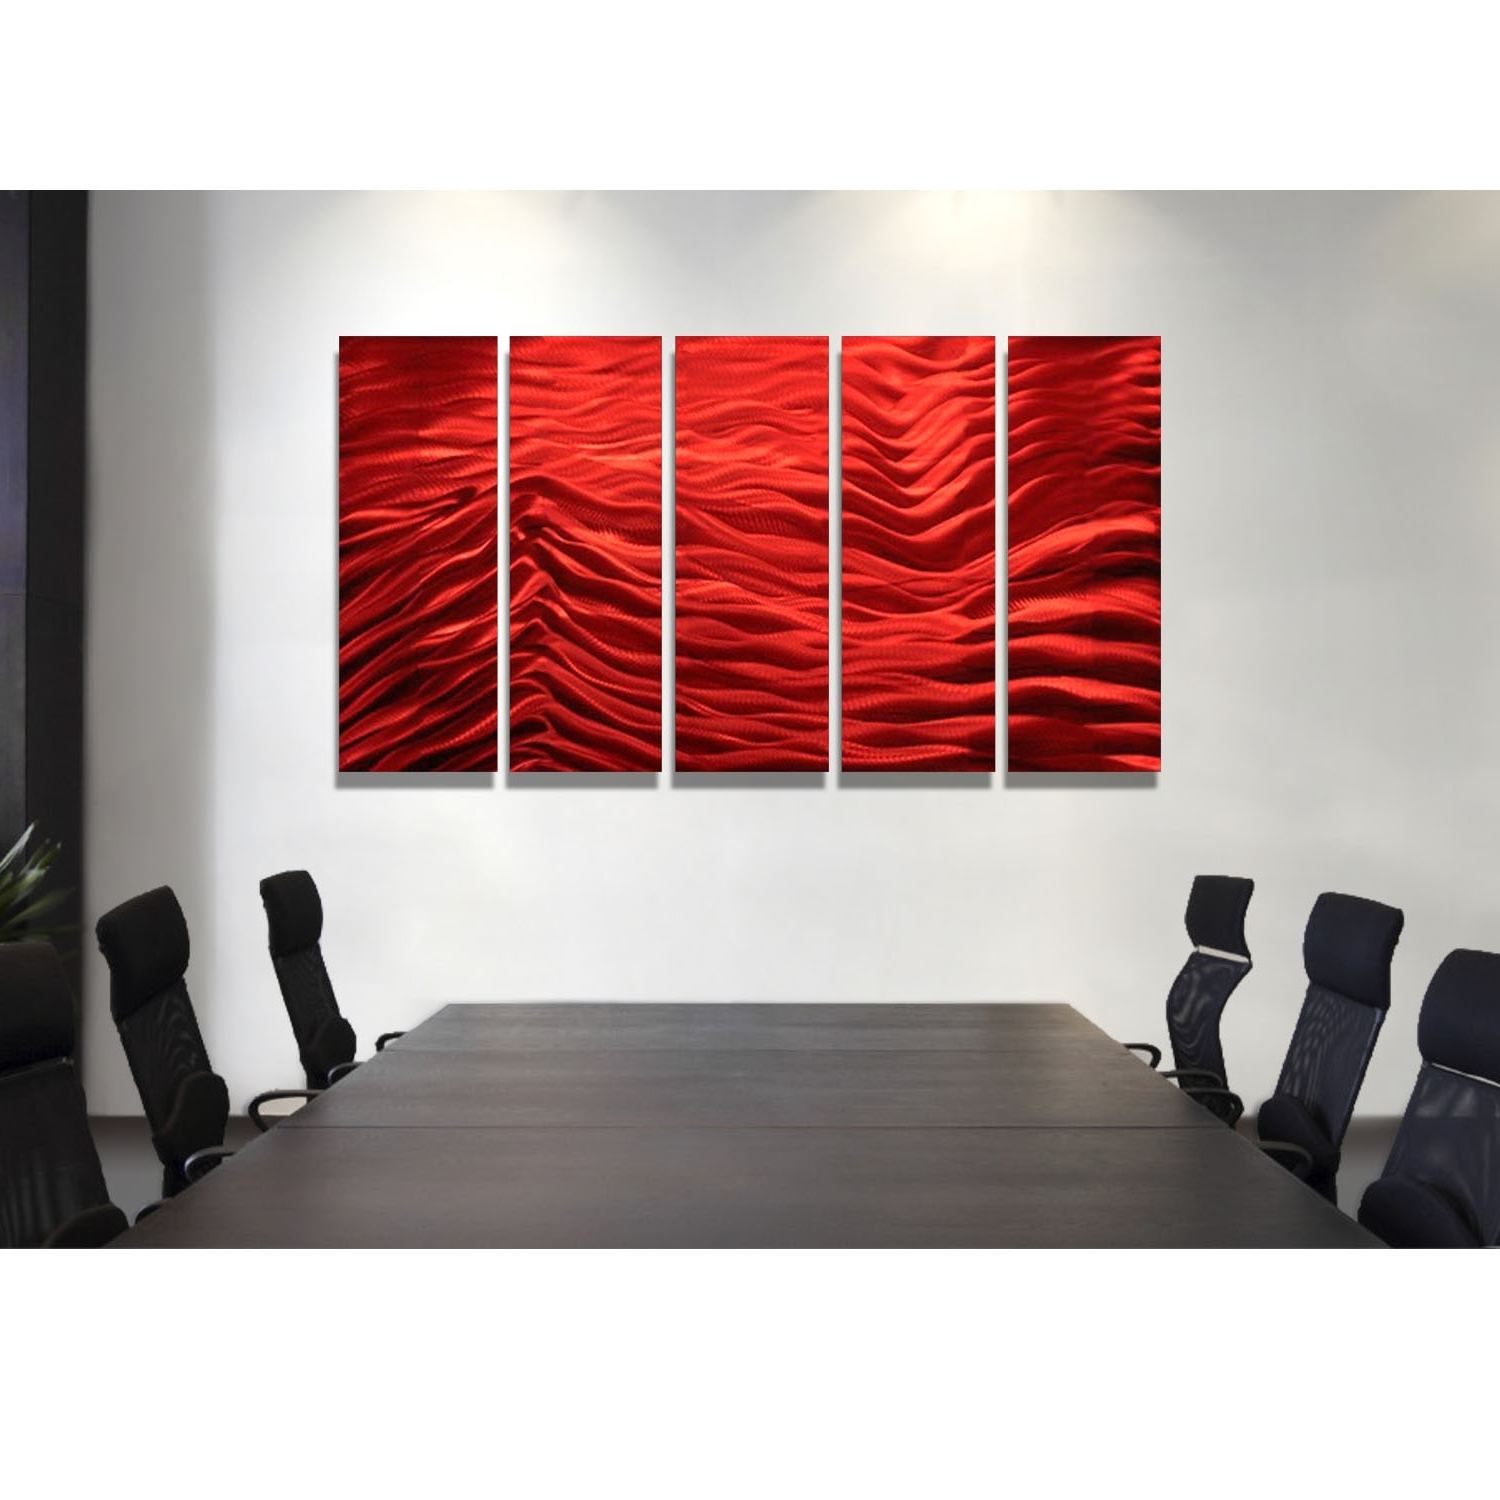 Well Liked 5 Panel Wall Art Pertaining To Red Inertia – Red Metal Wall Art – 5 Panel Wall Décorjon Allen (View 19 of 20)